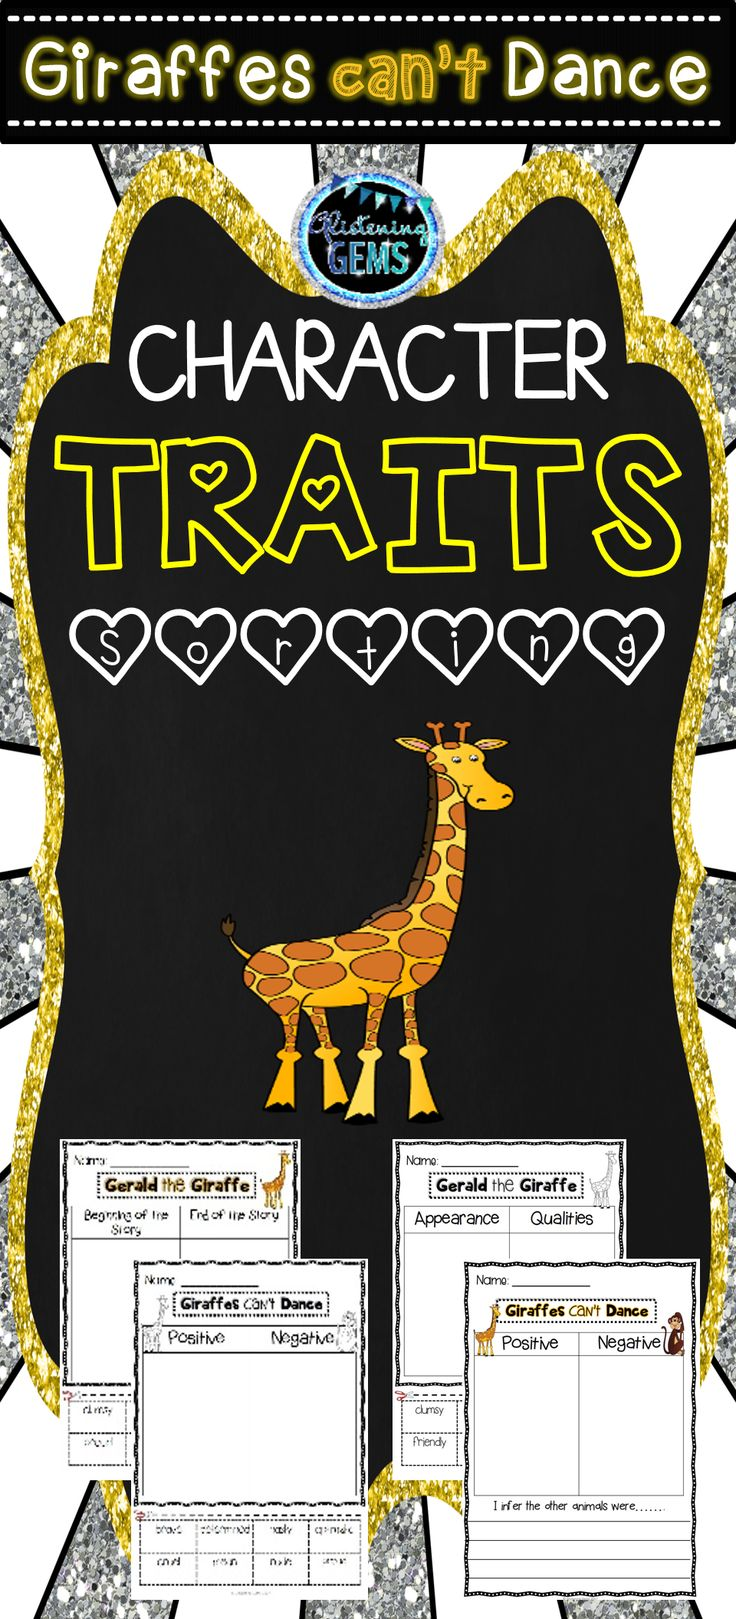 Giraffes Can't Dance - Character Traits Sorting Pack. Print and Go - color and black lined worksheets included.